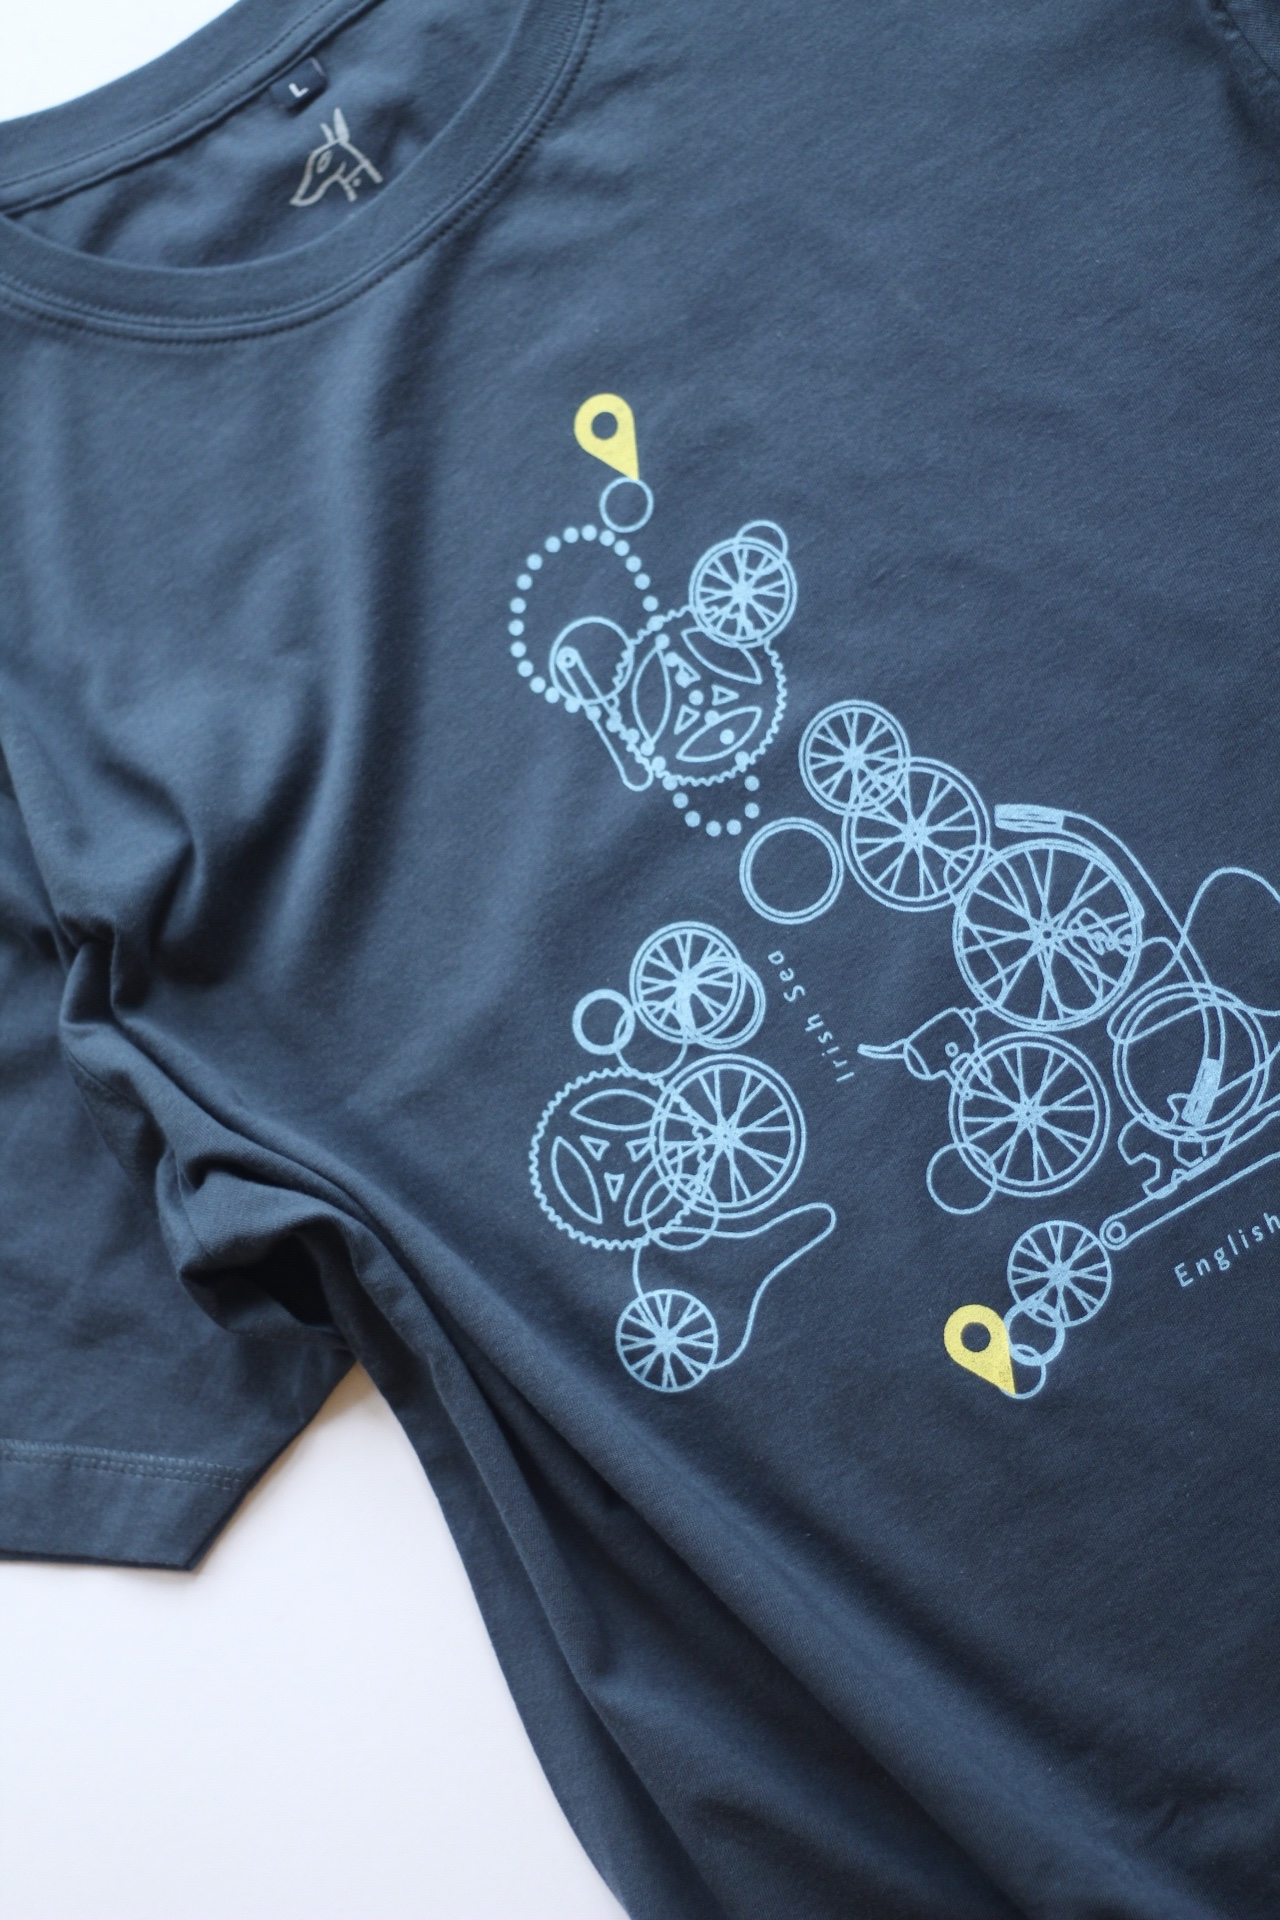 Our super- popular Cycle map Tee, with one or two location spots- this awesome dad's biked from Lands End to John O'Groats.